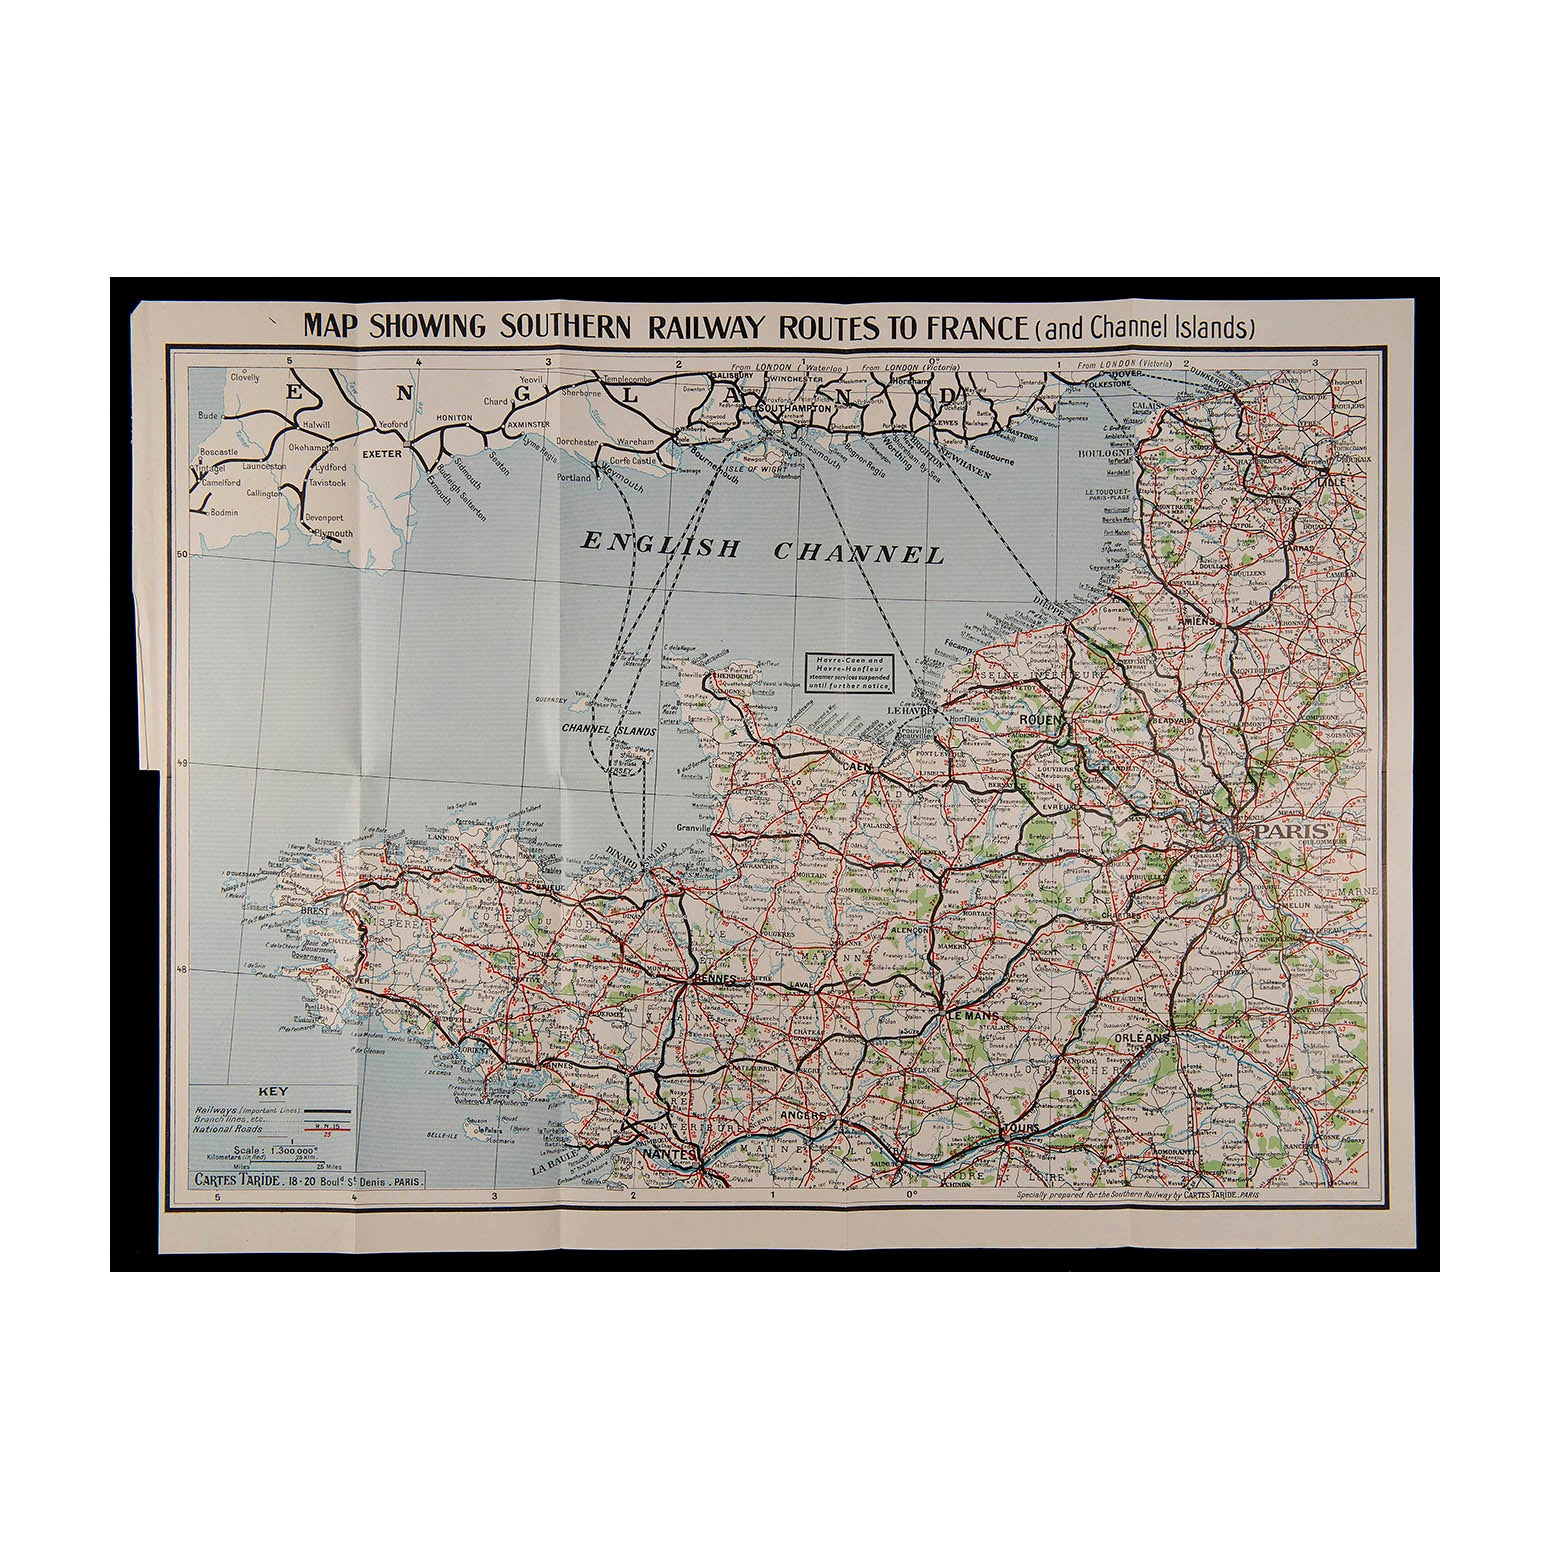 Map showing Southern Railway routes to France (and Channel Islands)